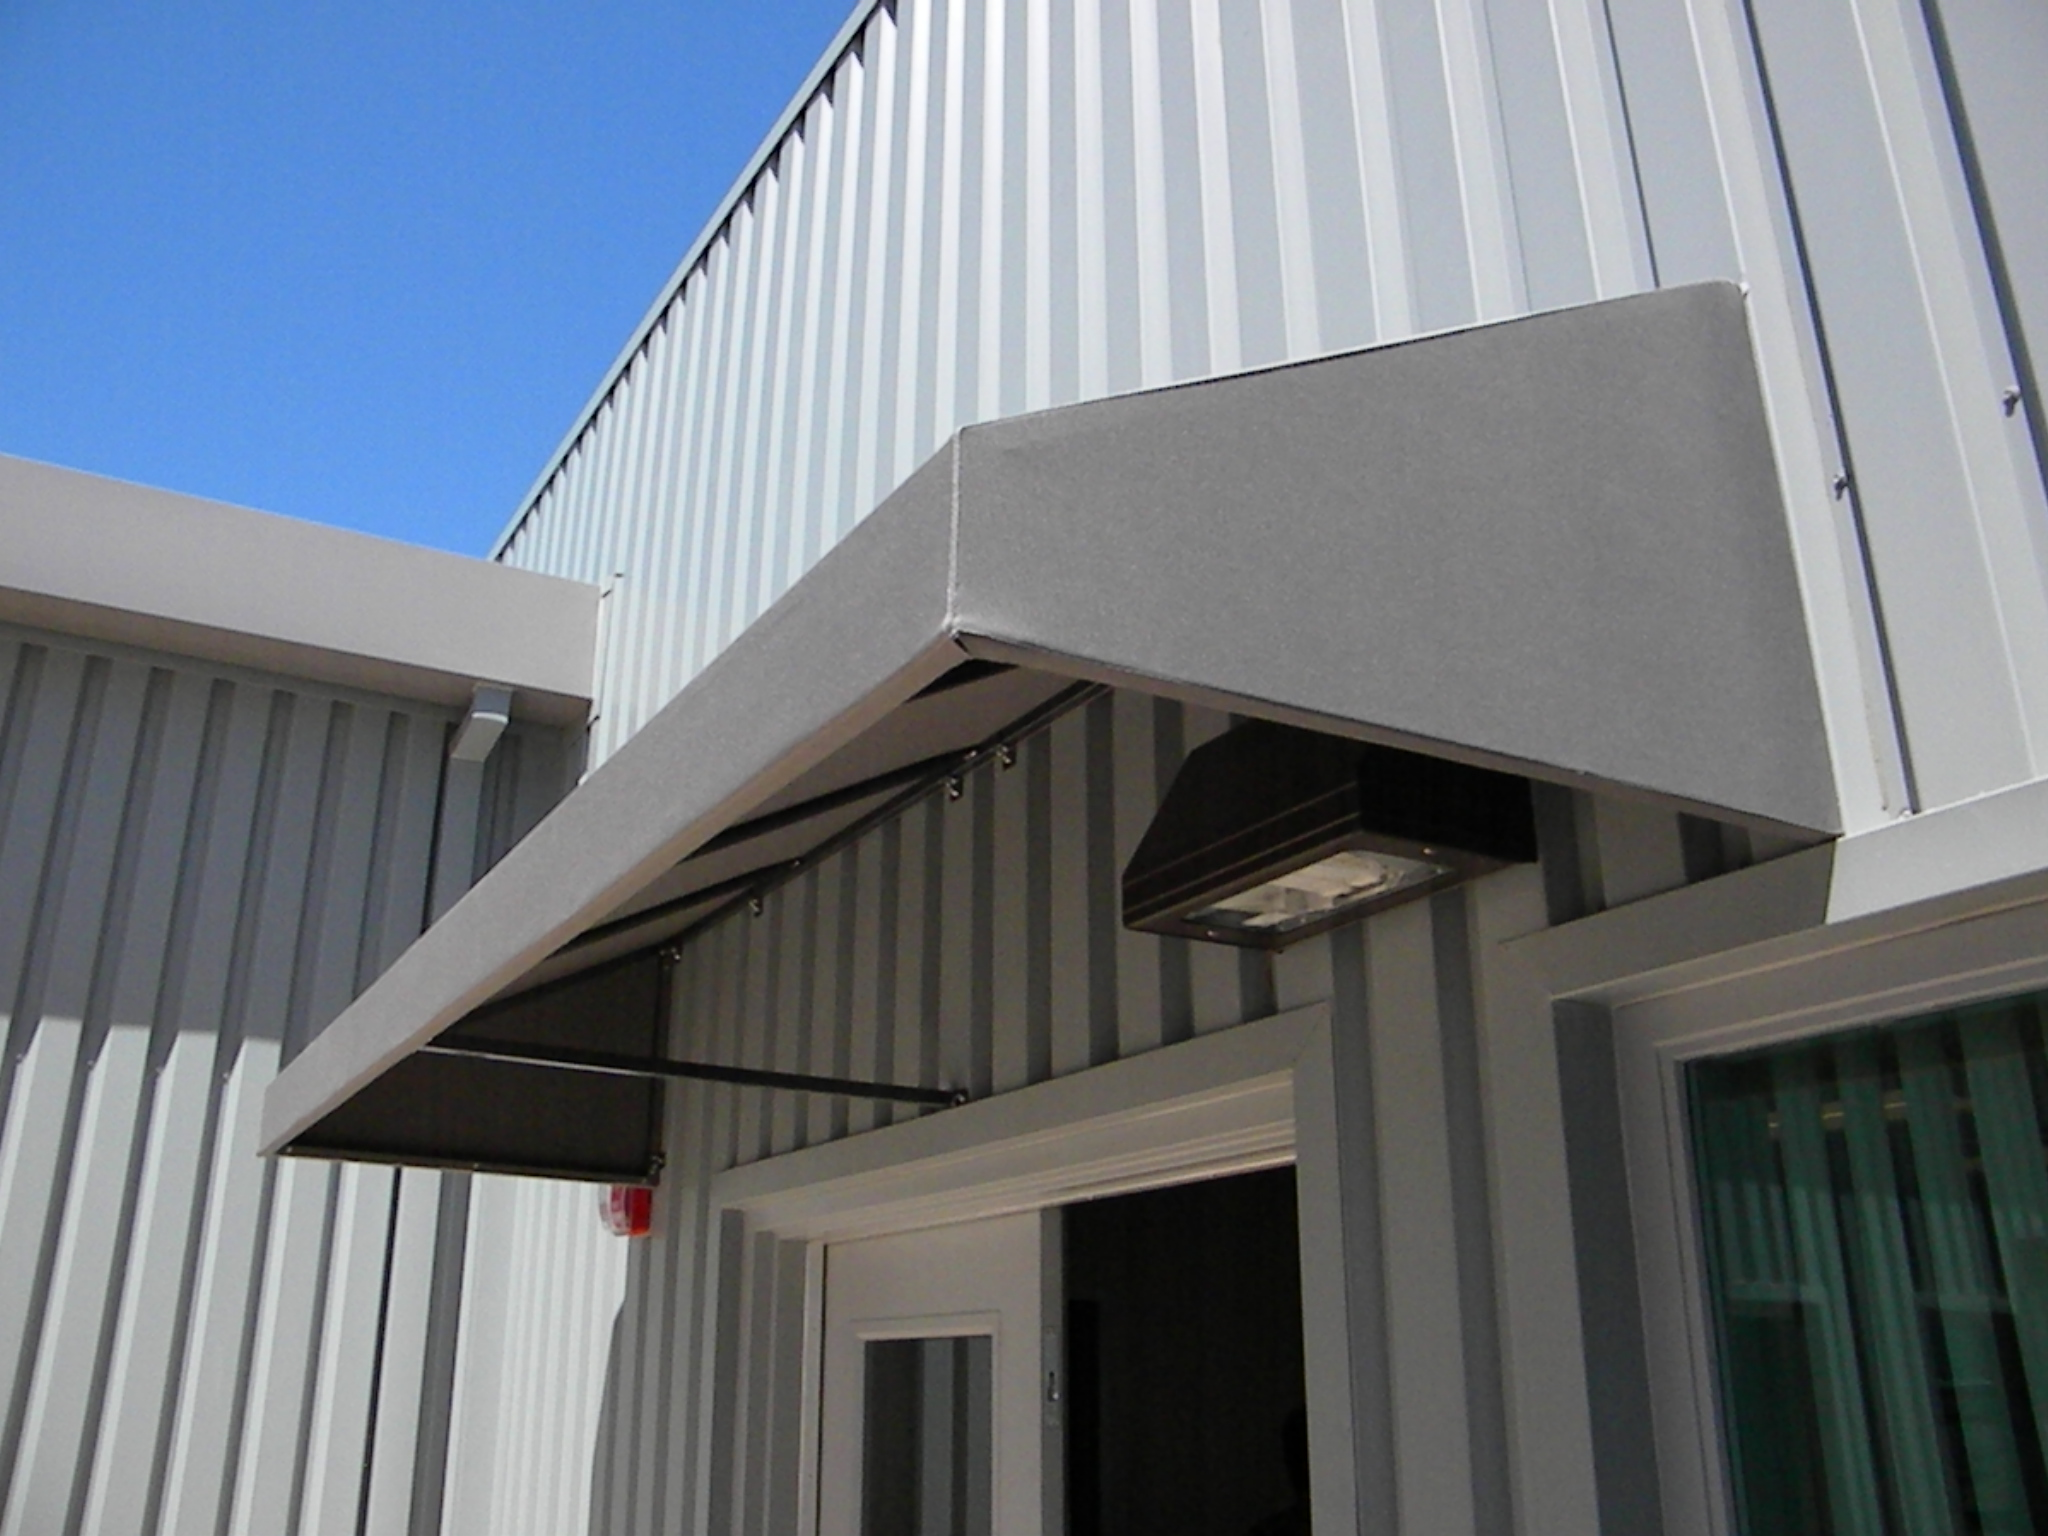 Awning Cleaning & Care: Some Tips and Advice